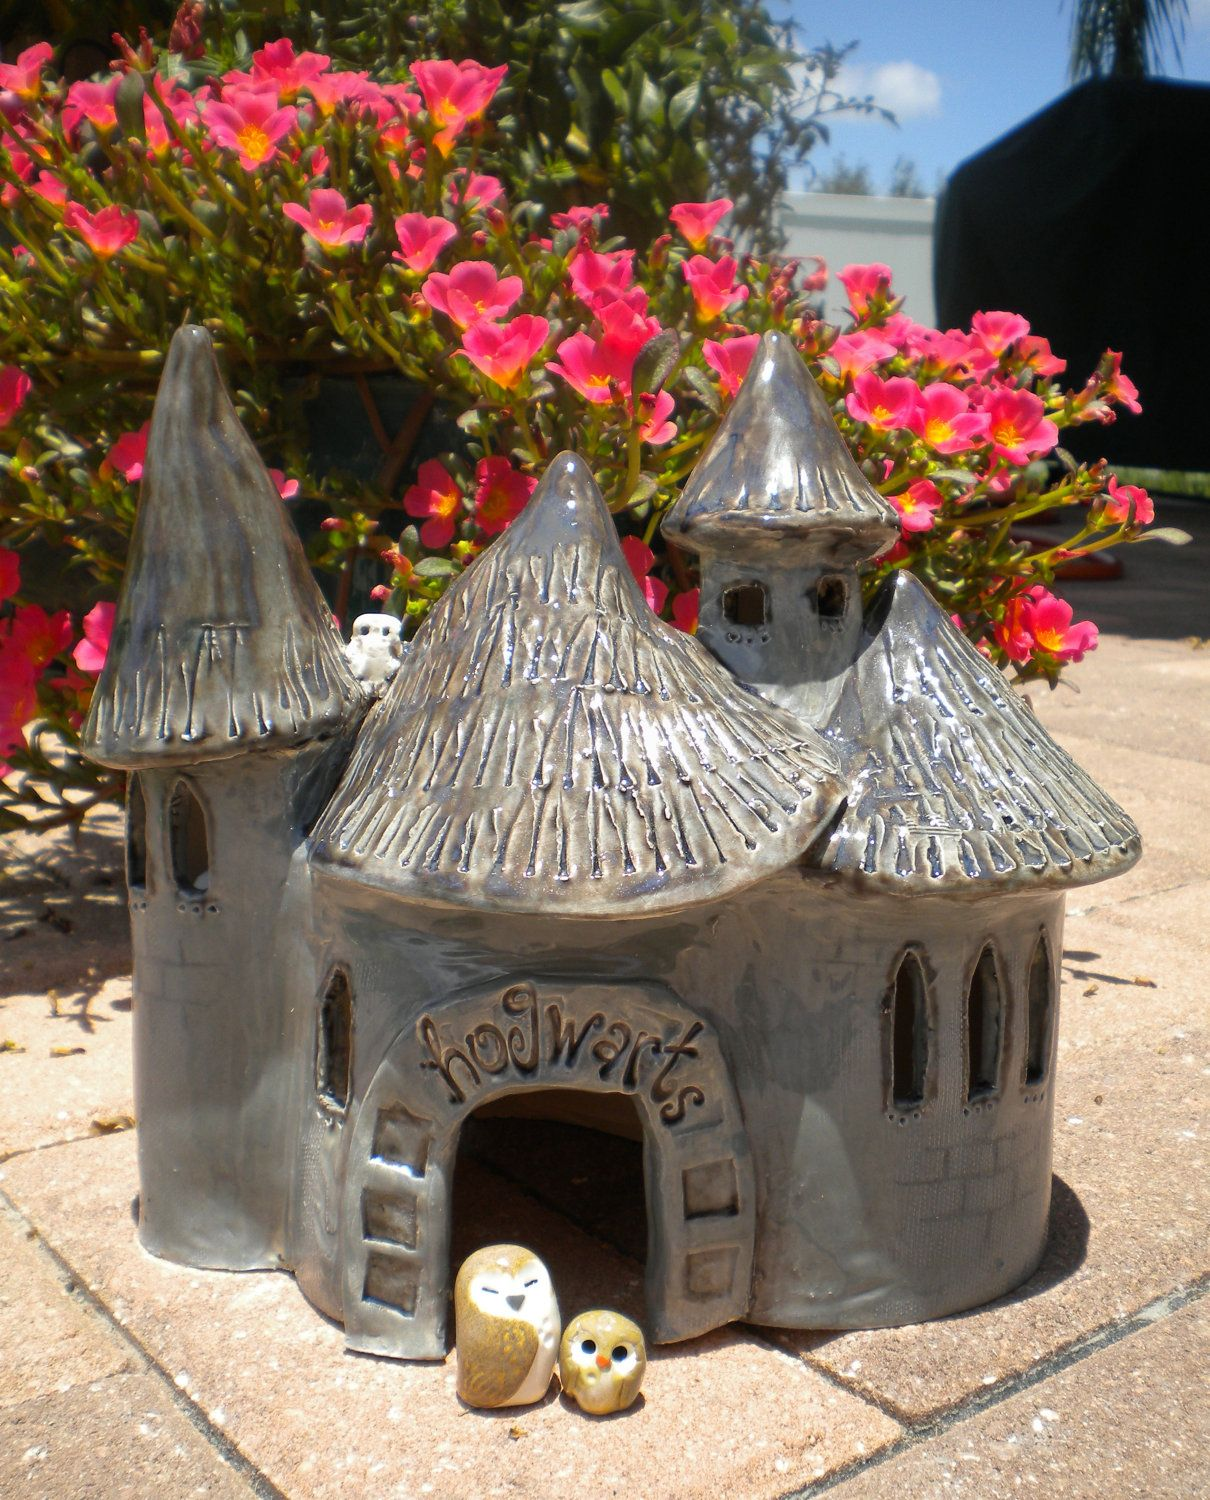 Hogwarts Castle Kiln Fired Clay Pet House by Calico Owls